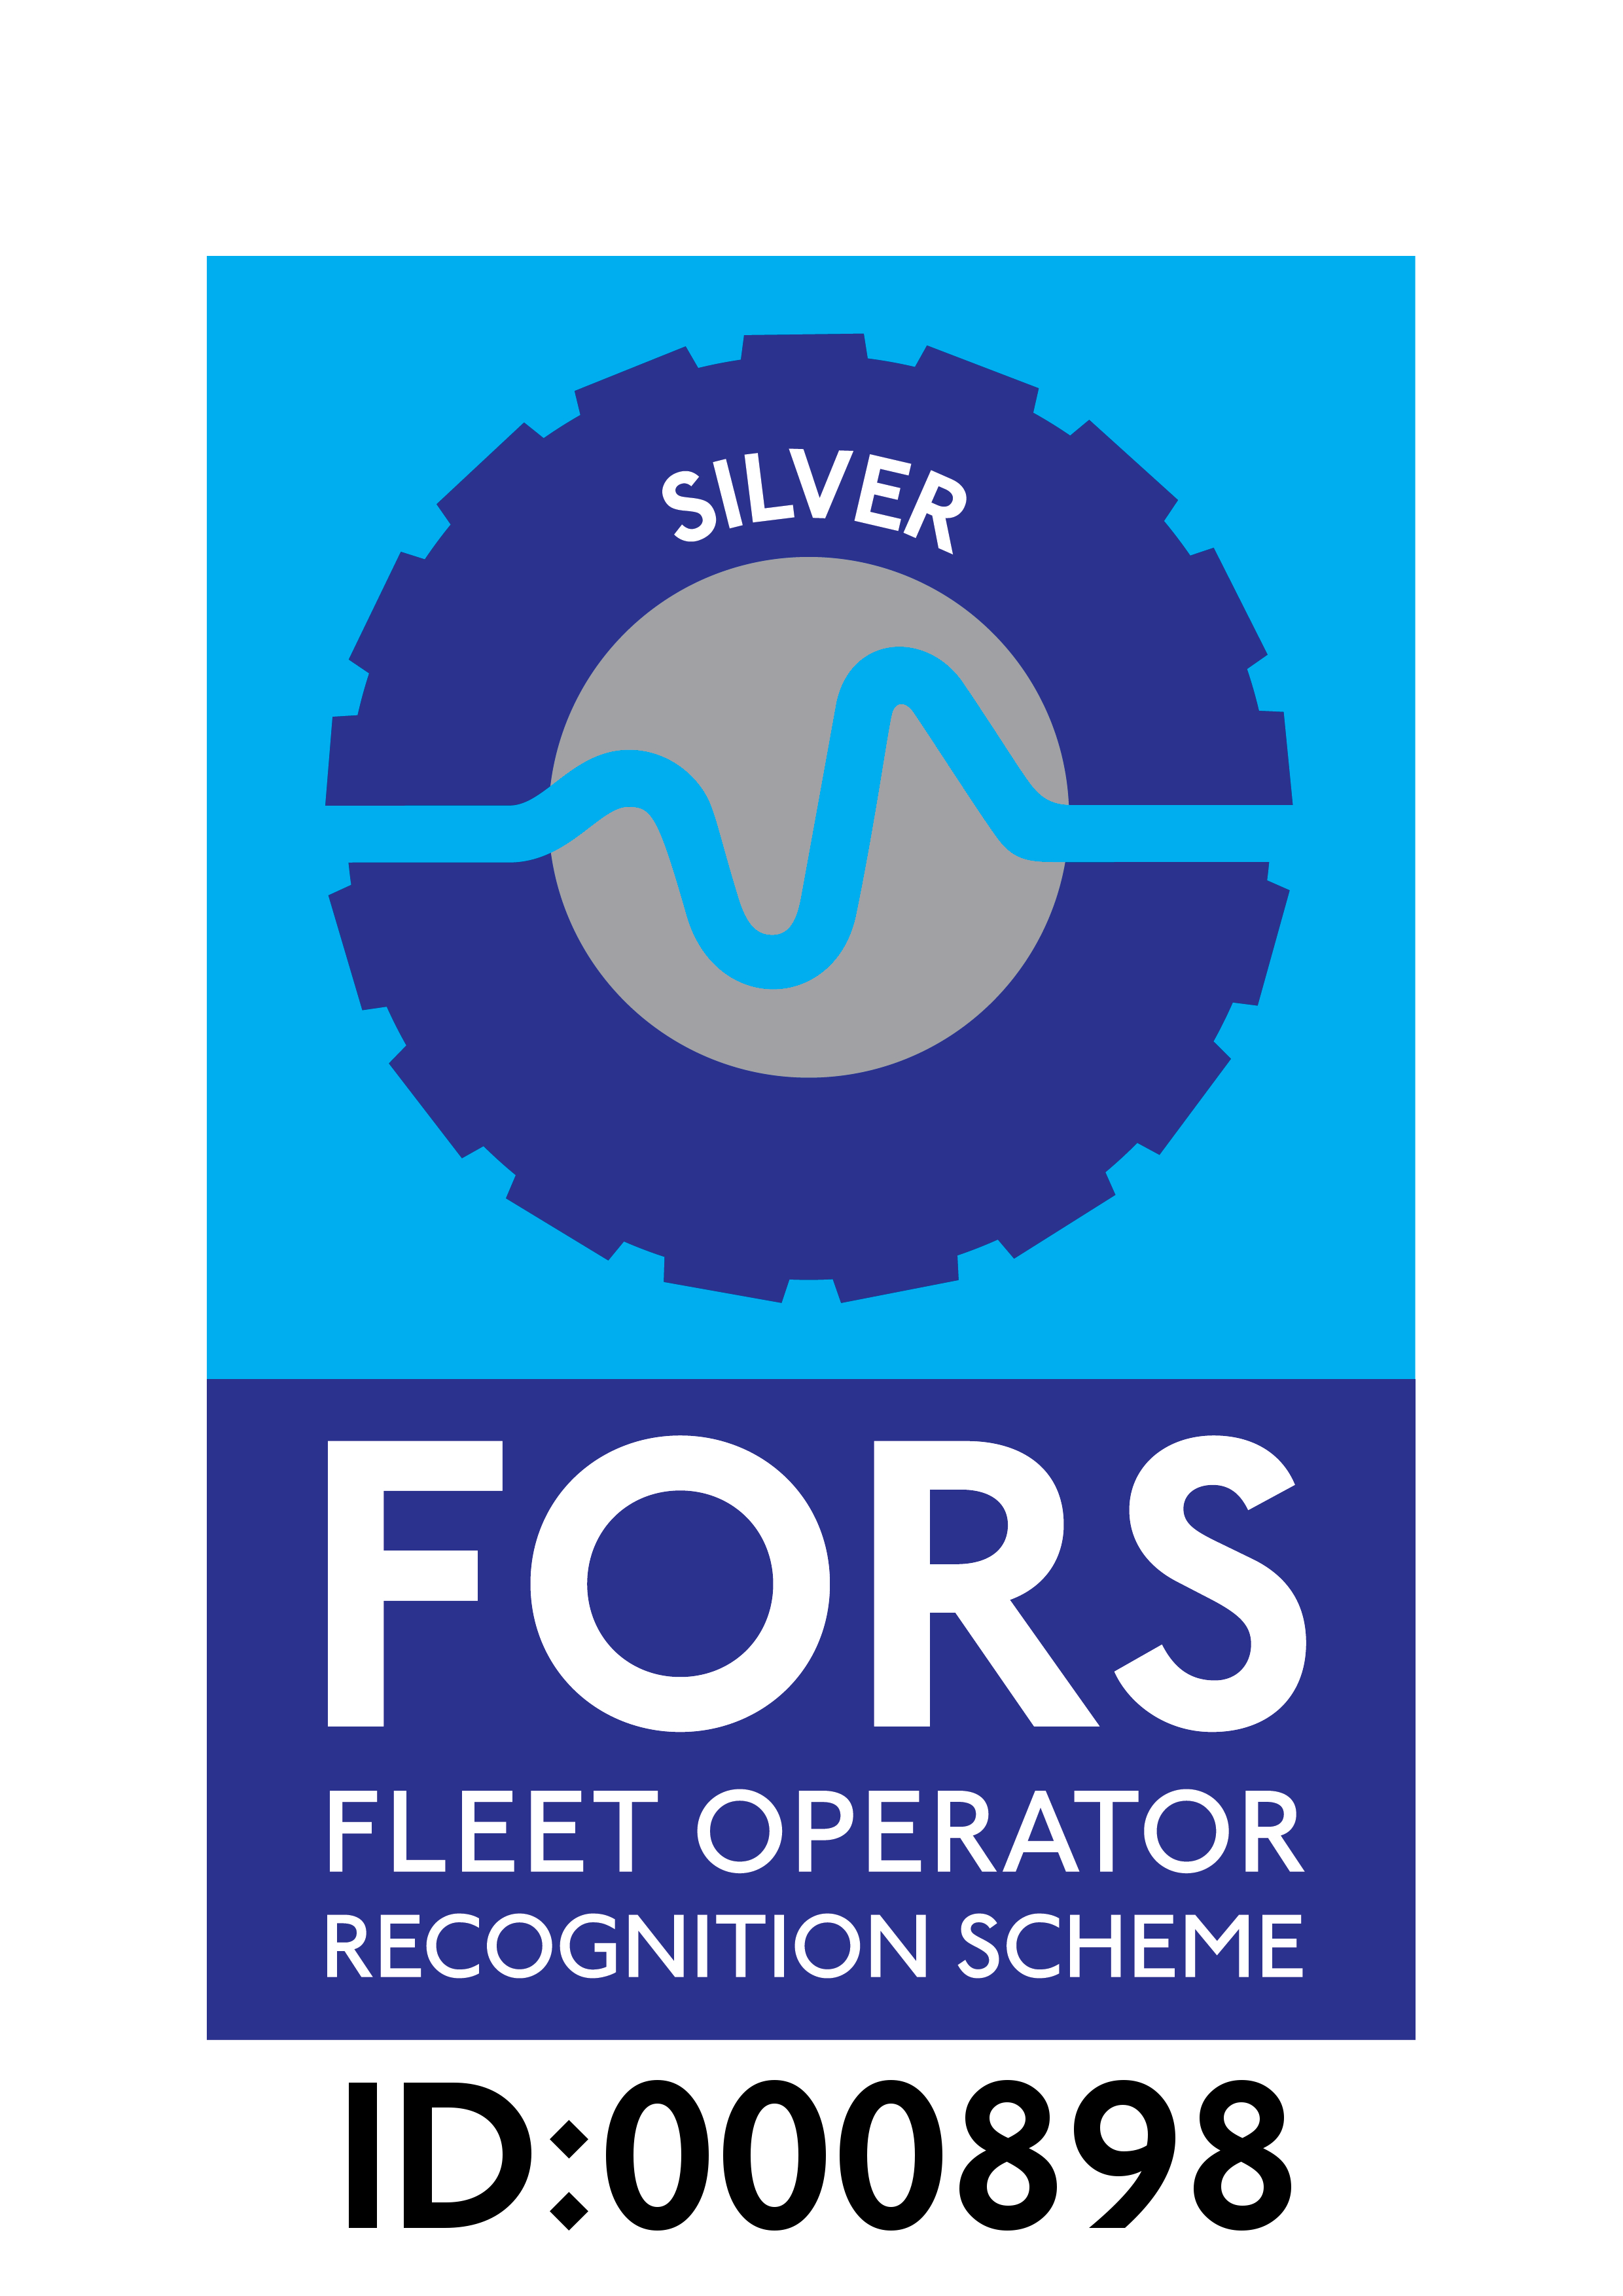 000898 FORS silver logo 7